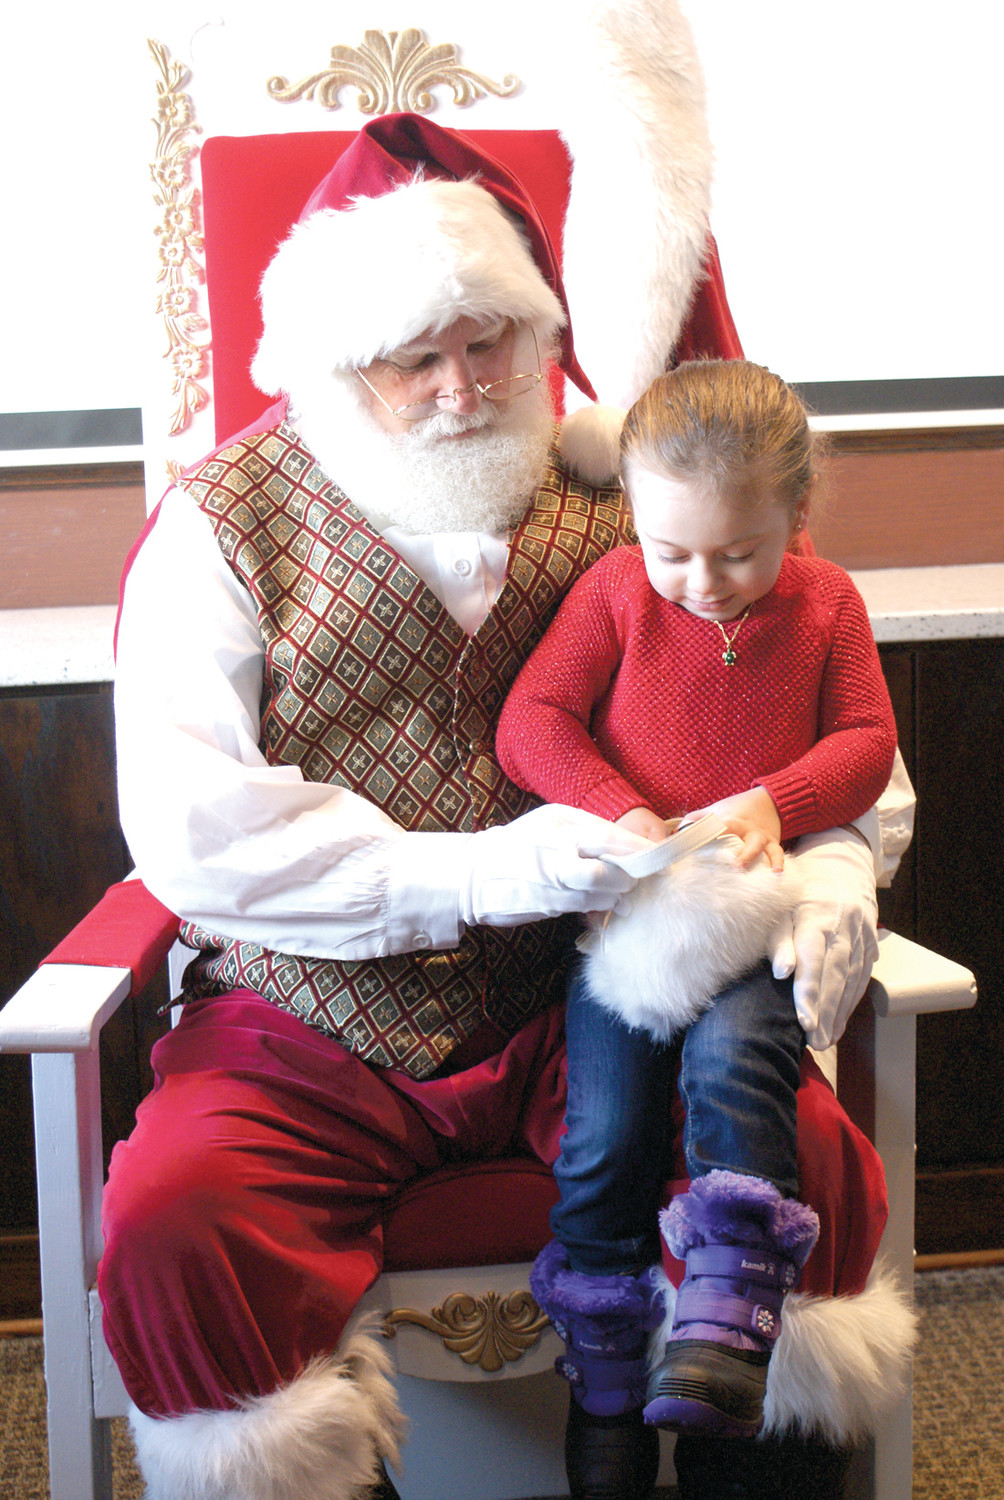 CHECKING THE LIST: Santa Claus enjoyed breakfast and time with children at The Corner Bakery in Garden City on Dec. 10. He is pictured with Eliana Valorose, age 3, as he checks her list.